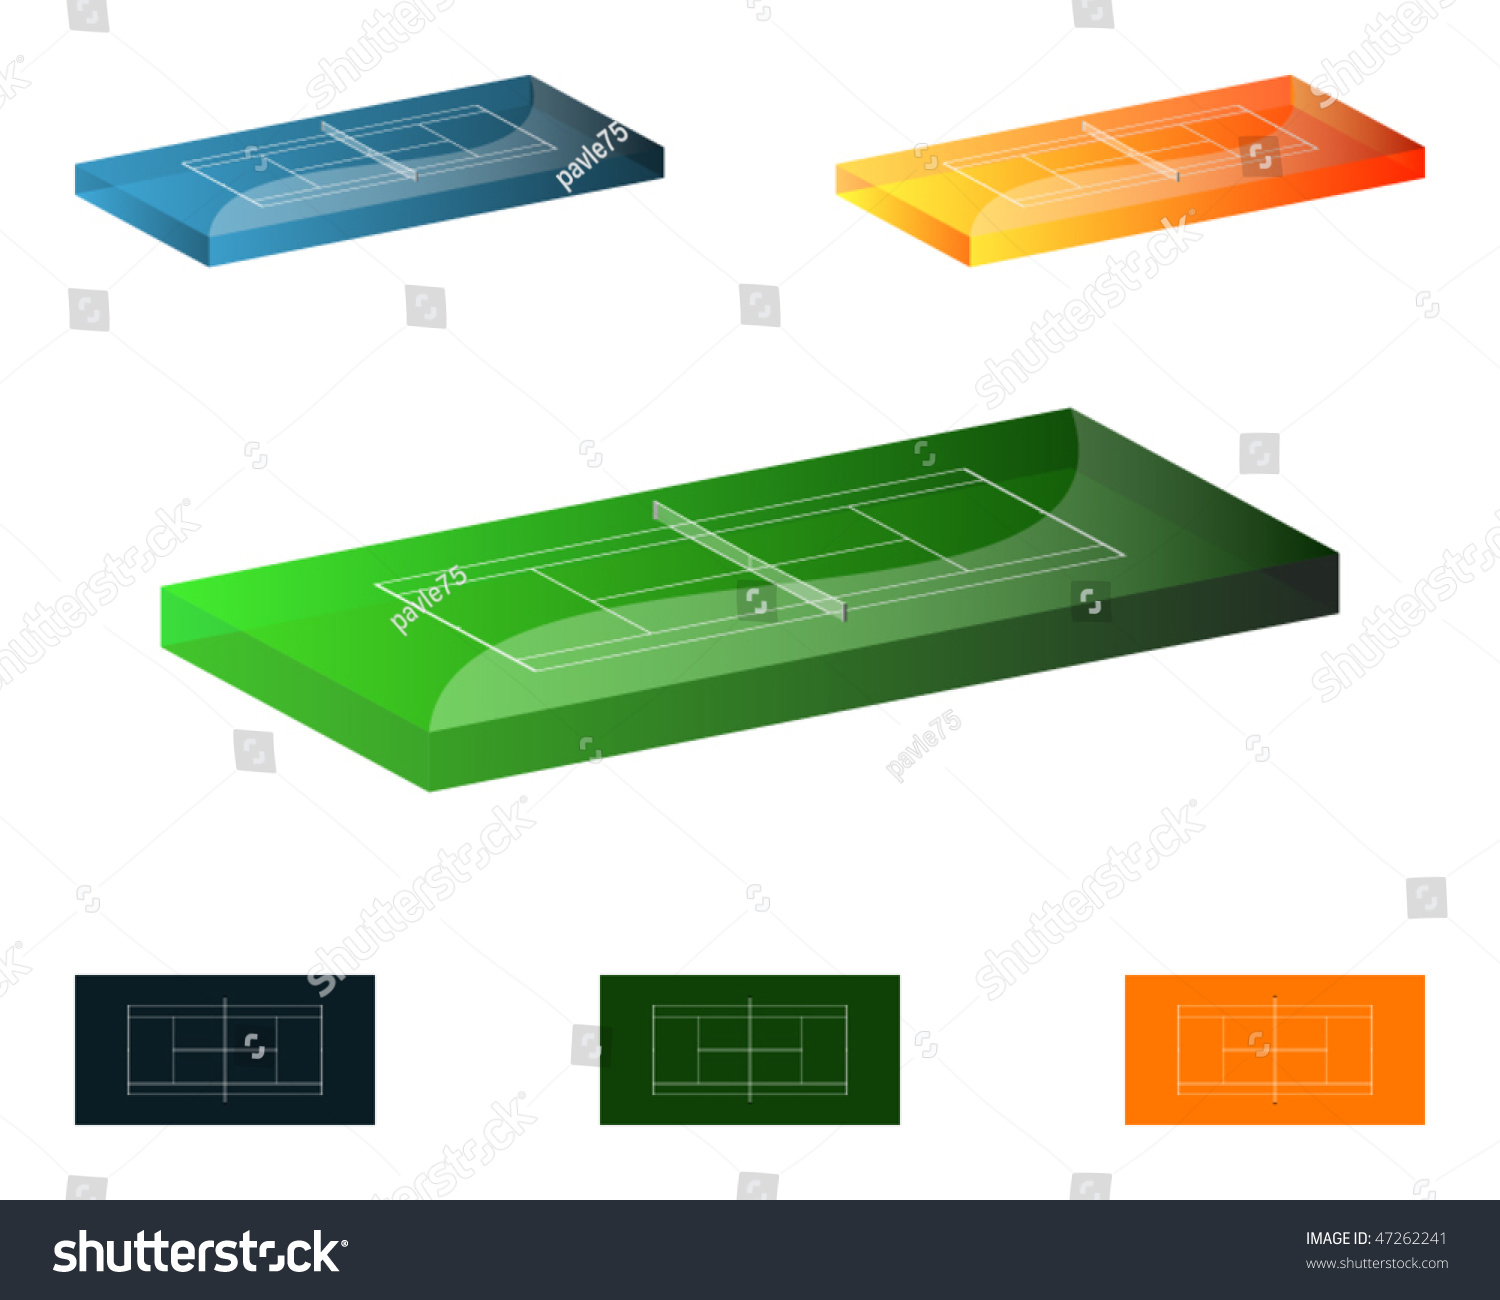 measurement of tennis court with diagram rj11 wiring uk 3d courts grass clay and hard base diagrams